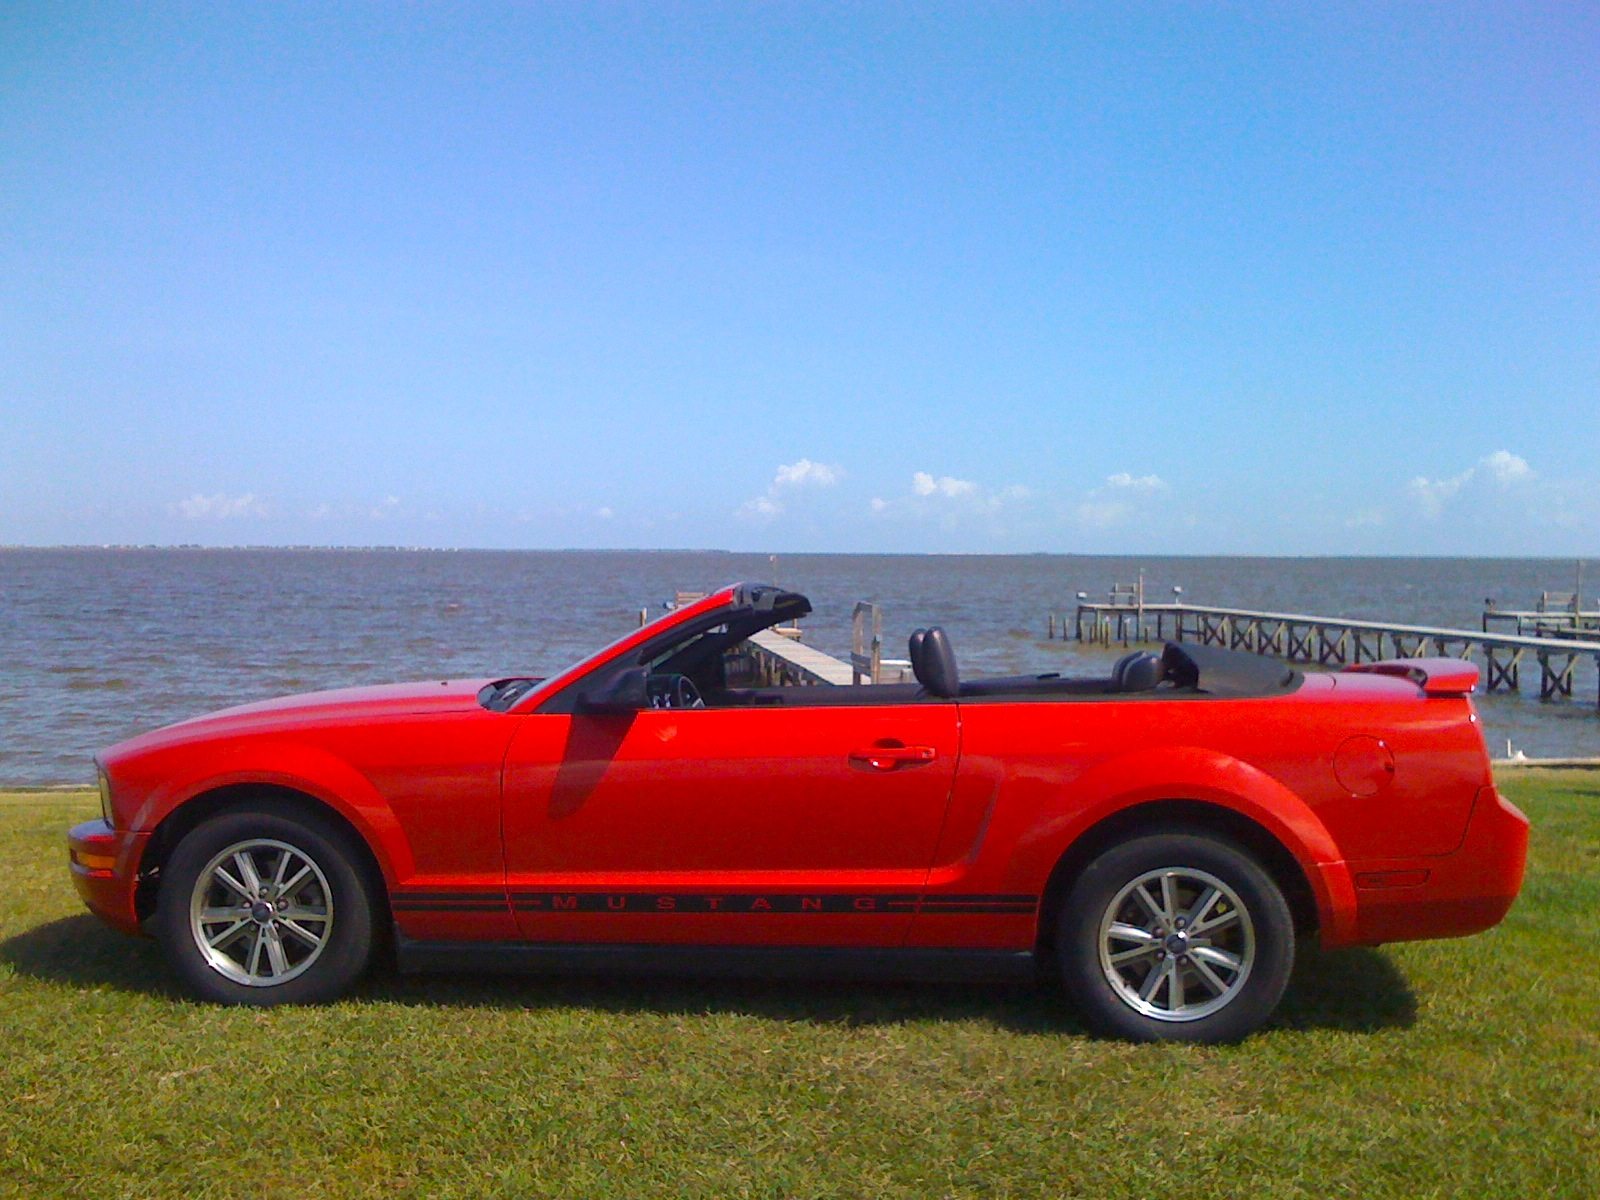 Rent a Ford Mustang convertible or similar model for $350 a day (Photo via Google)